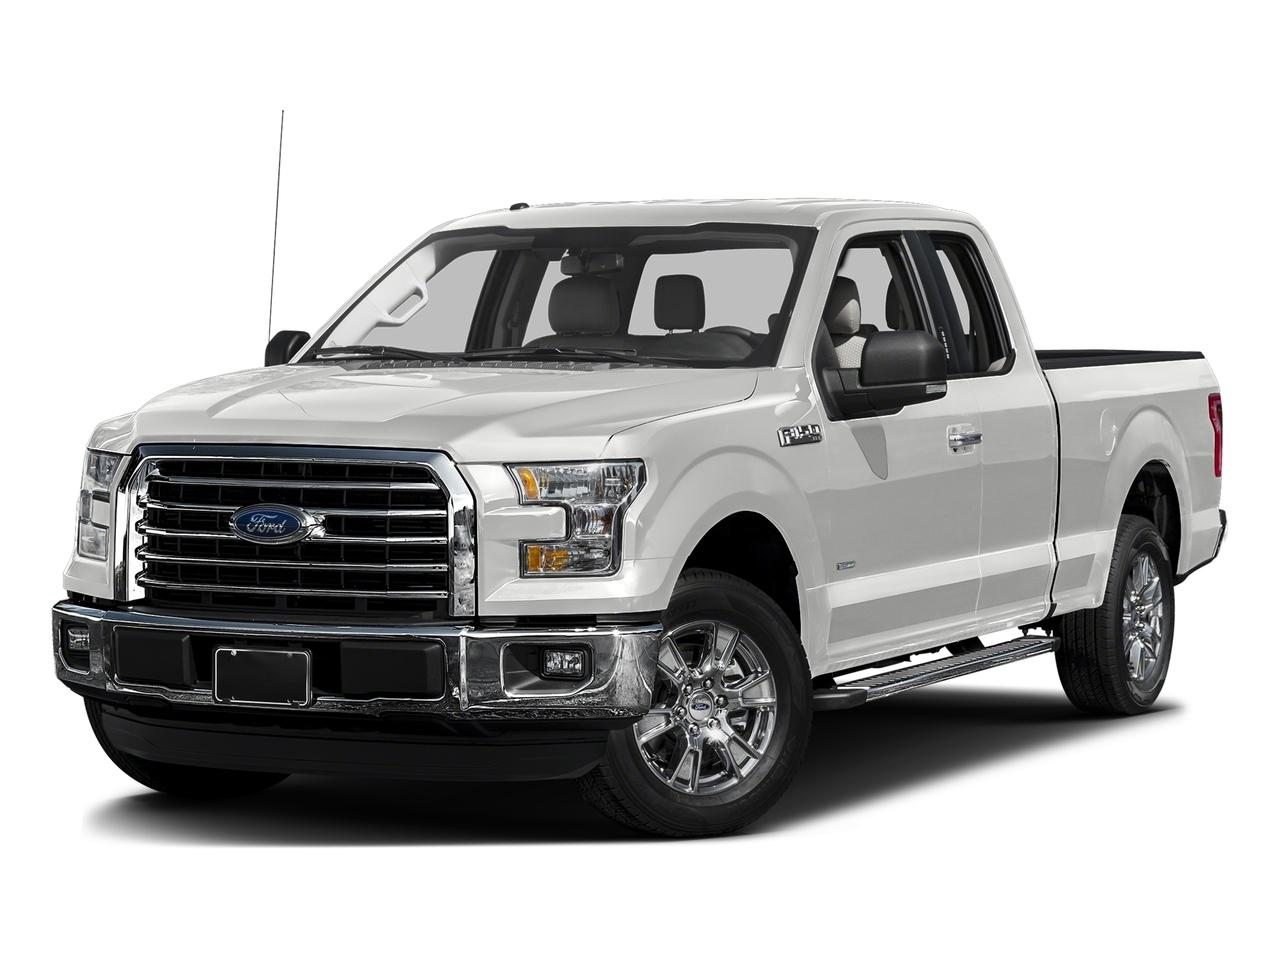 Used 2016 Ford F-150 Lariat with VIN 1FTFX1EGXGKD22922 for sale in Worthington, Minnesota